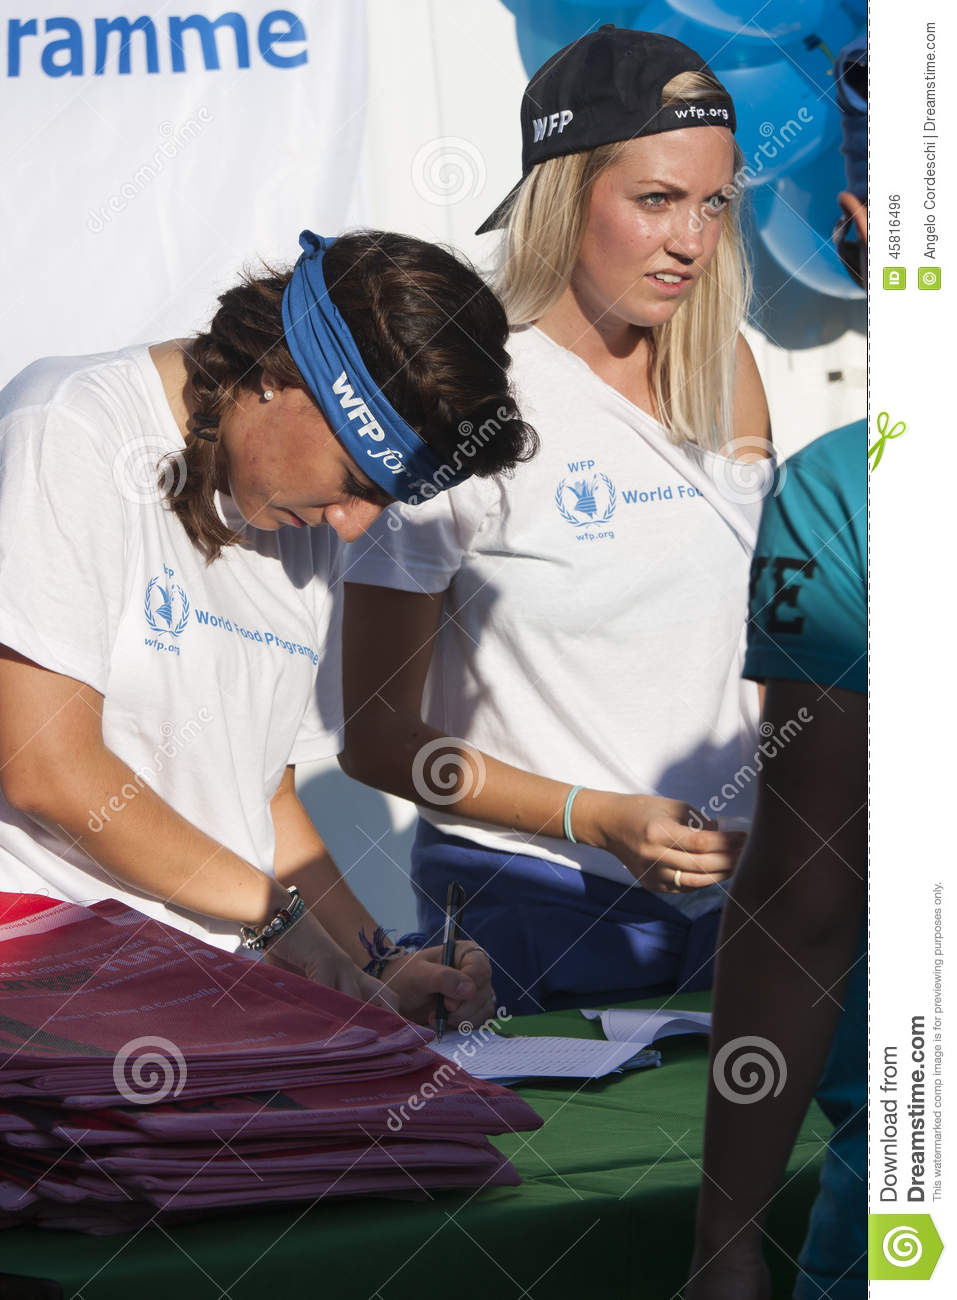 Hunger Run (Rome) - WFP - Two girls at the bench of the inscriptions